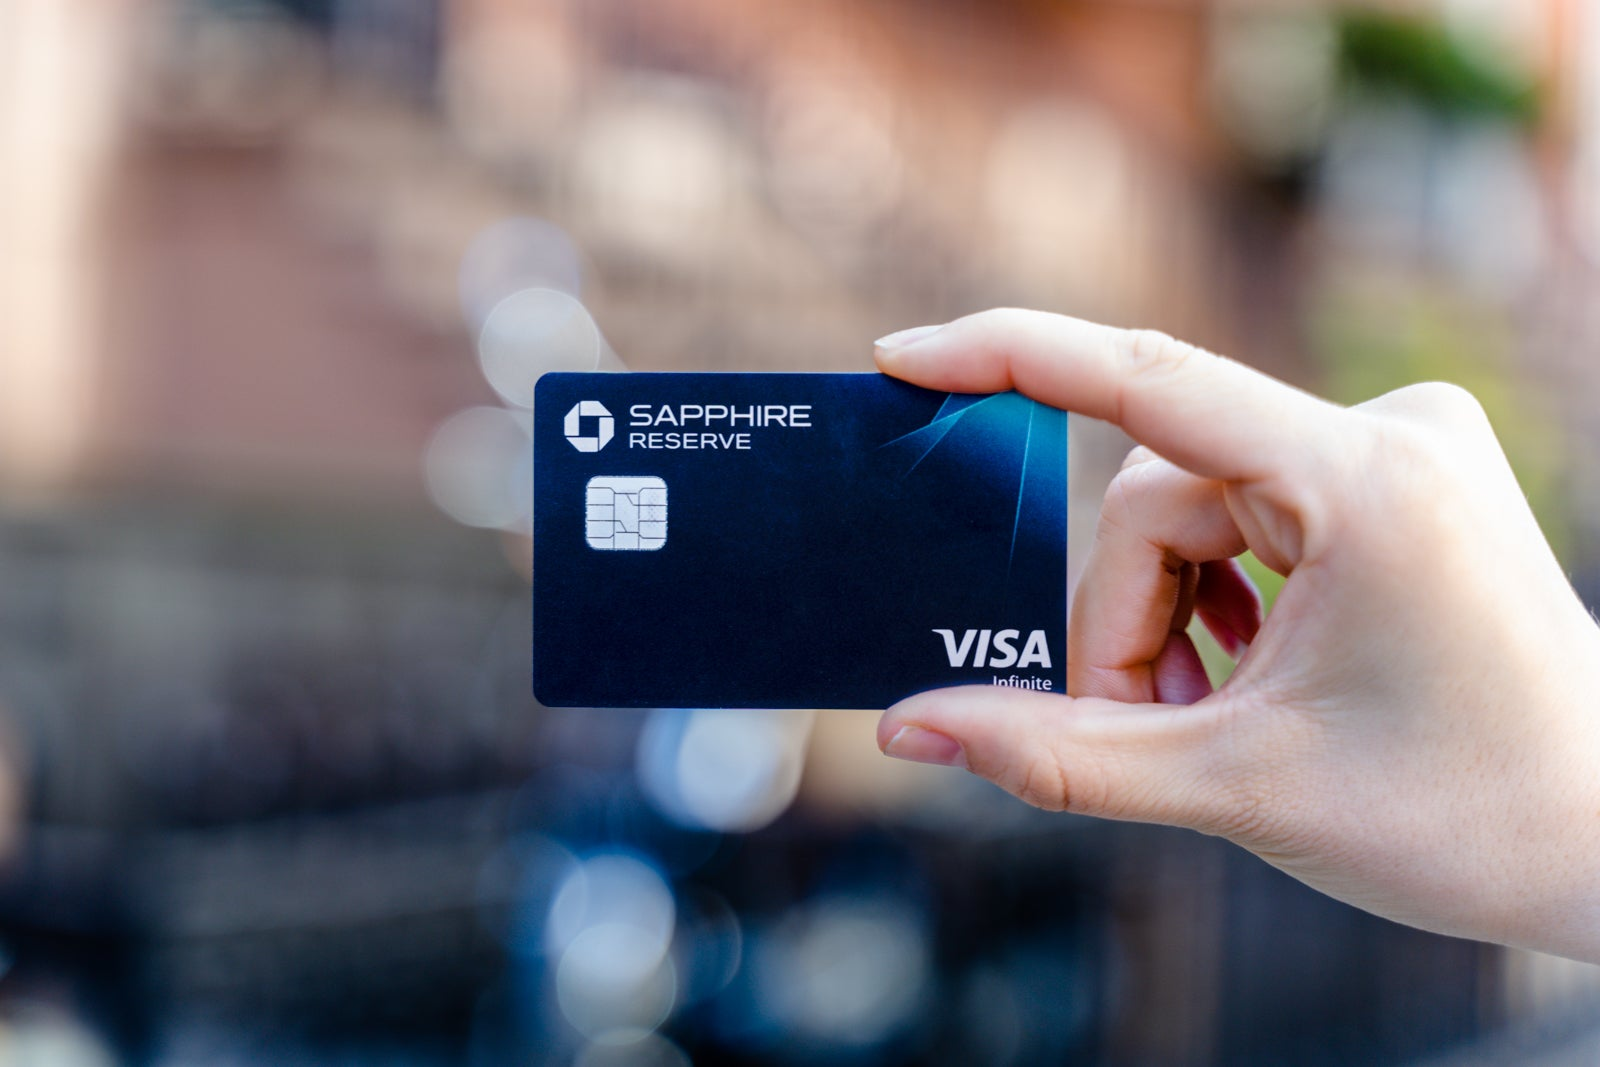 Chase Adds Limited Time Sapphire Benefits To Help Grounded Travelers